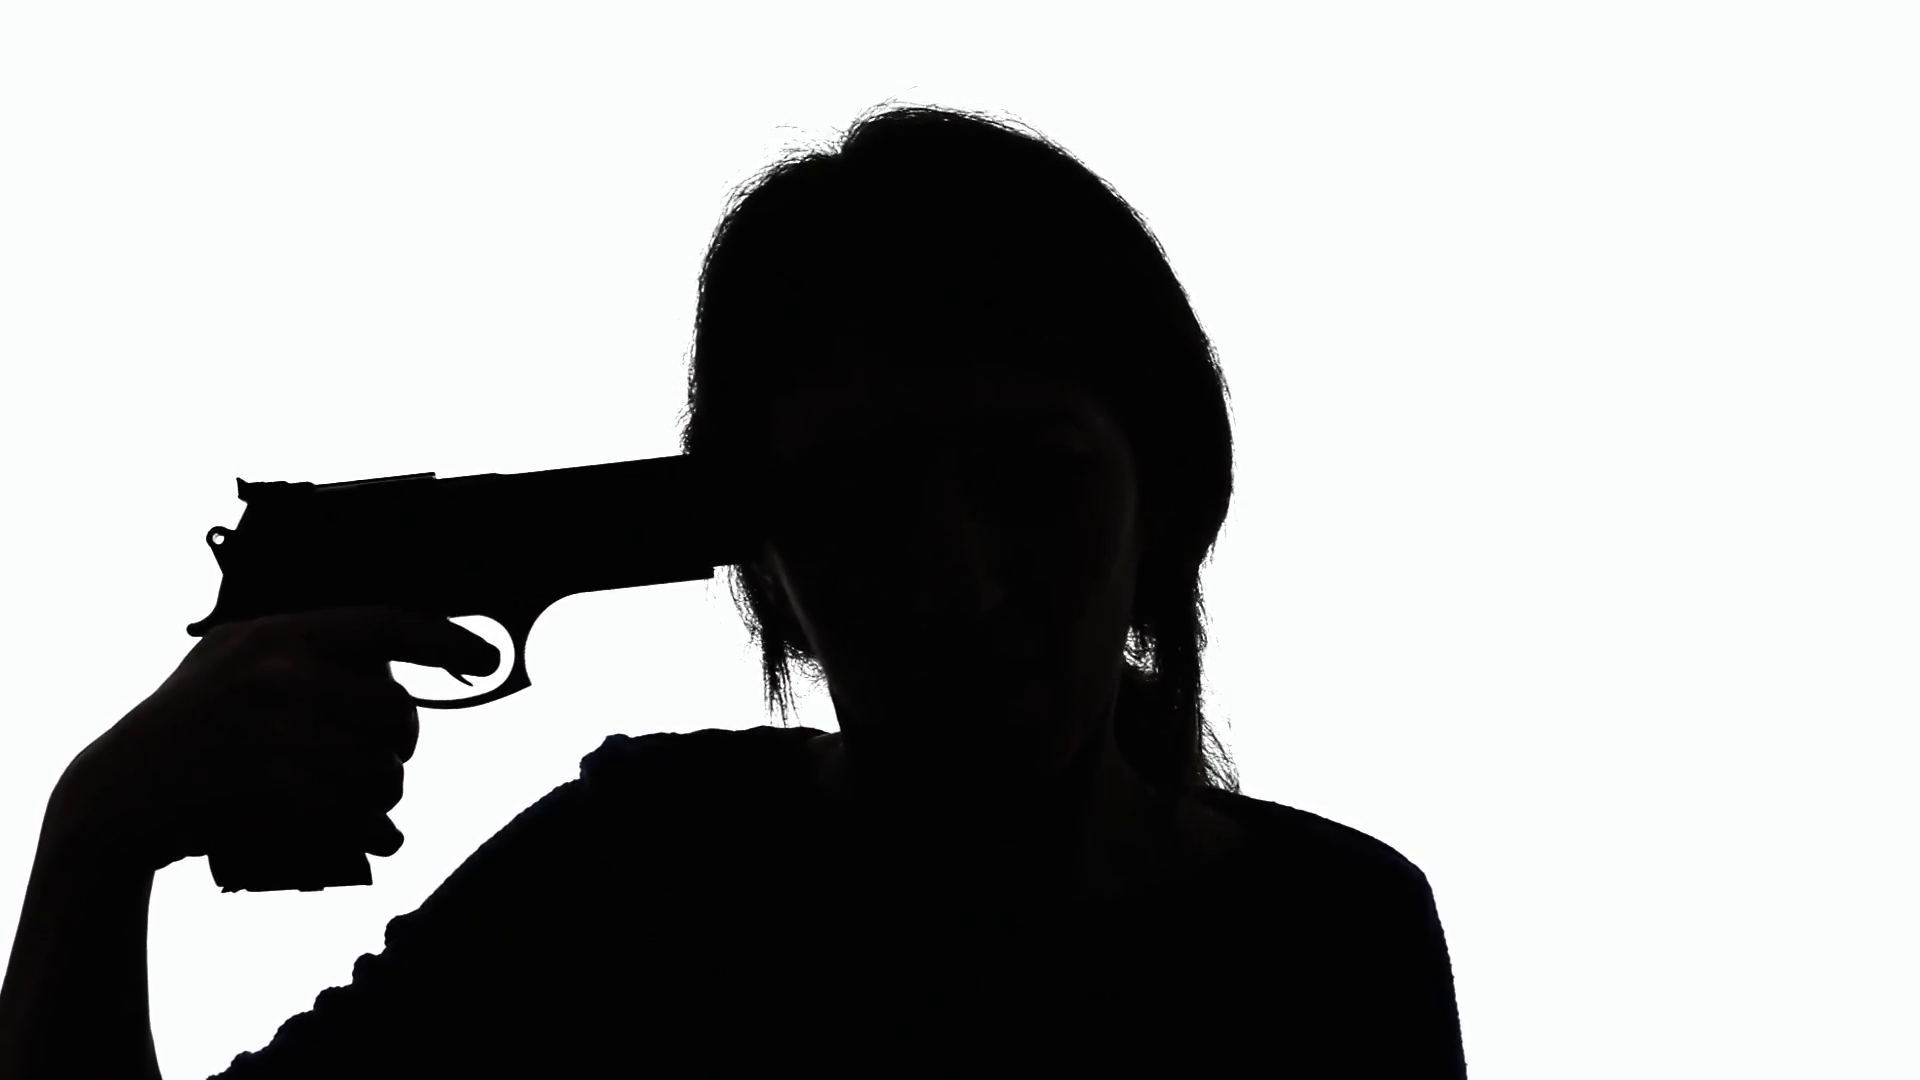 1920x1080 Silhouette Woman Gun Attempting Suicide. A Depressed Woman Taking